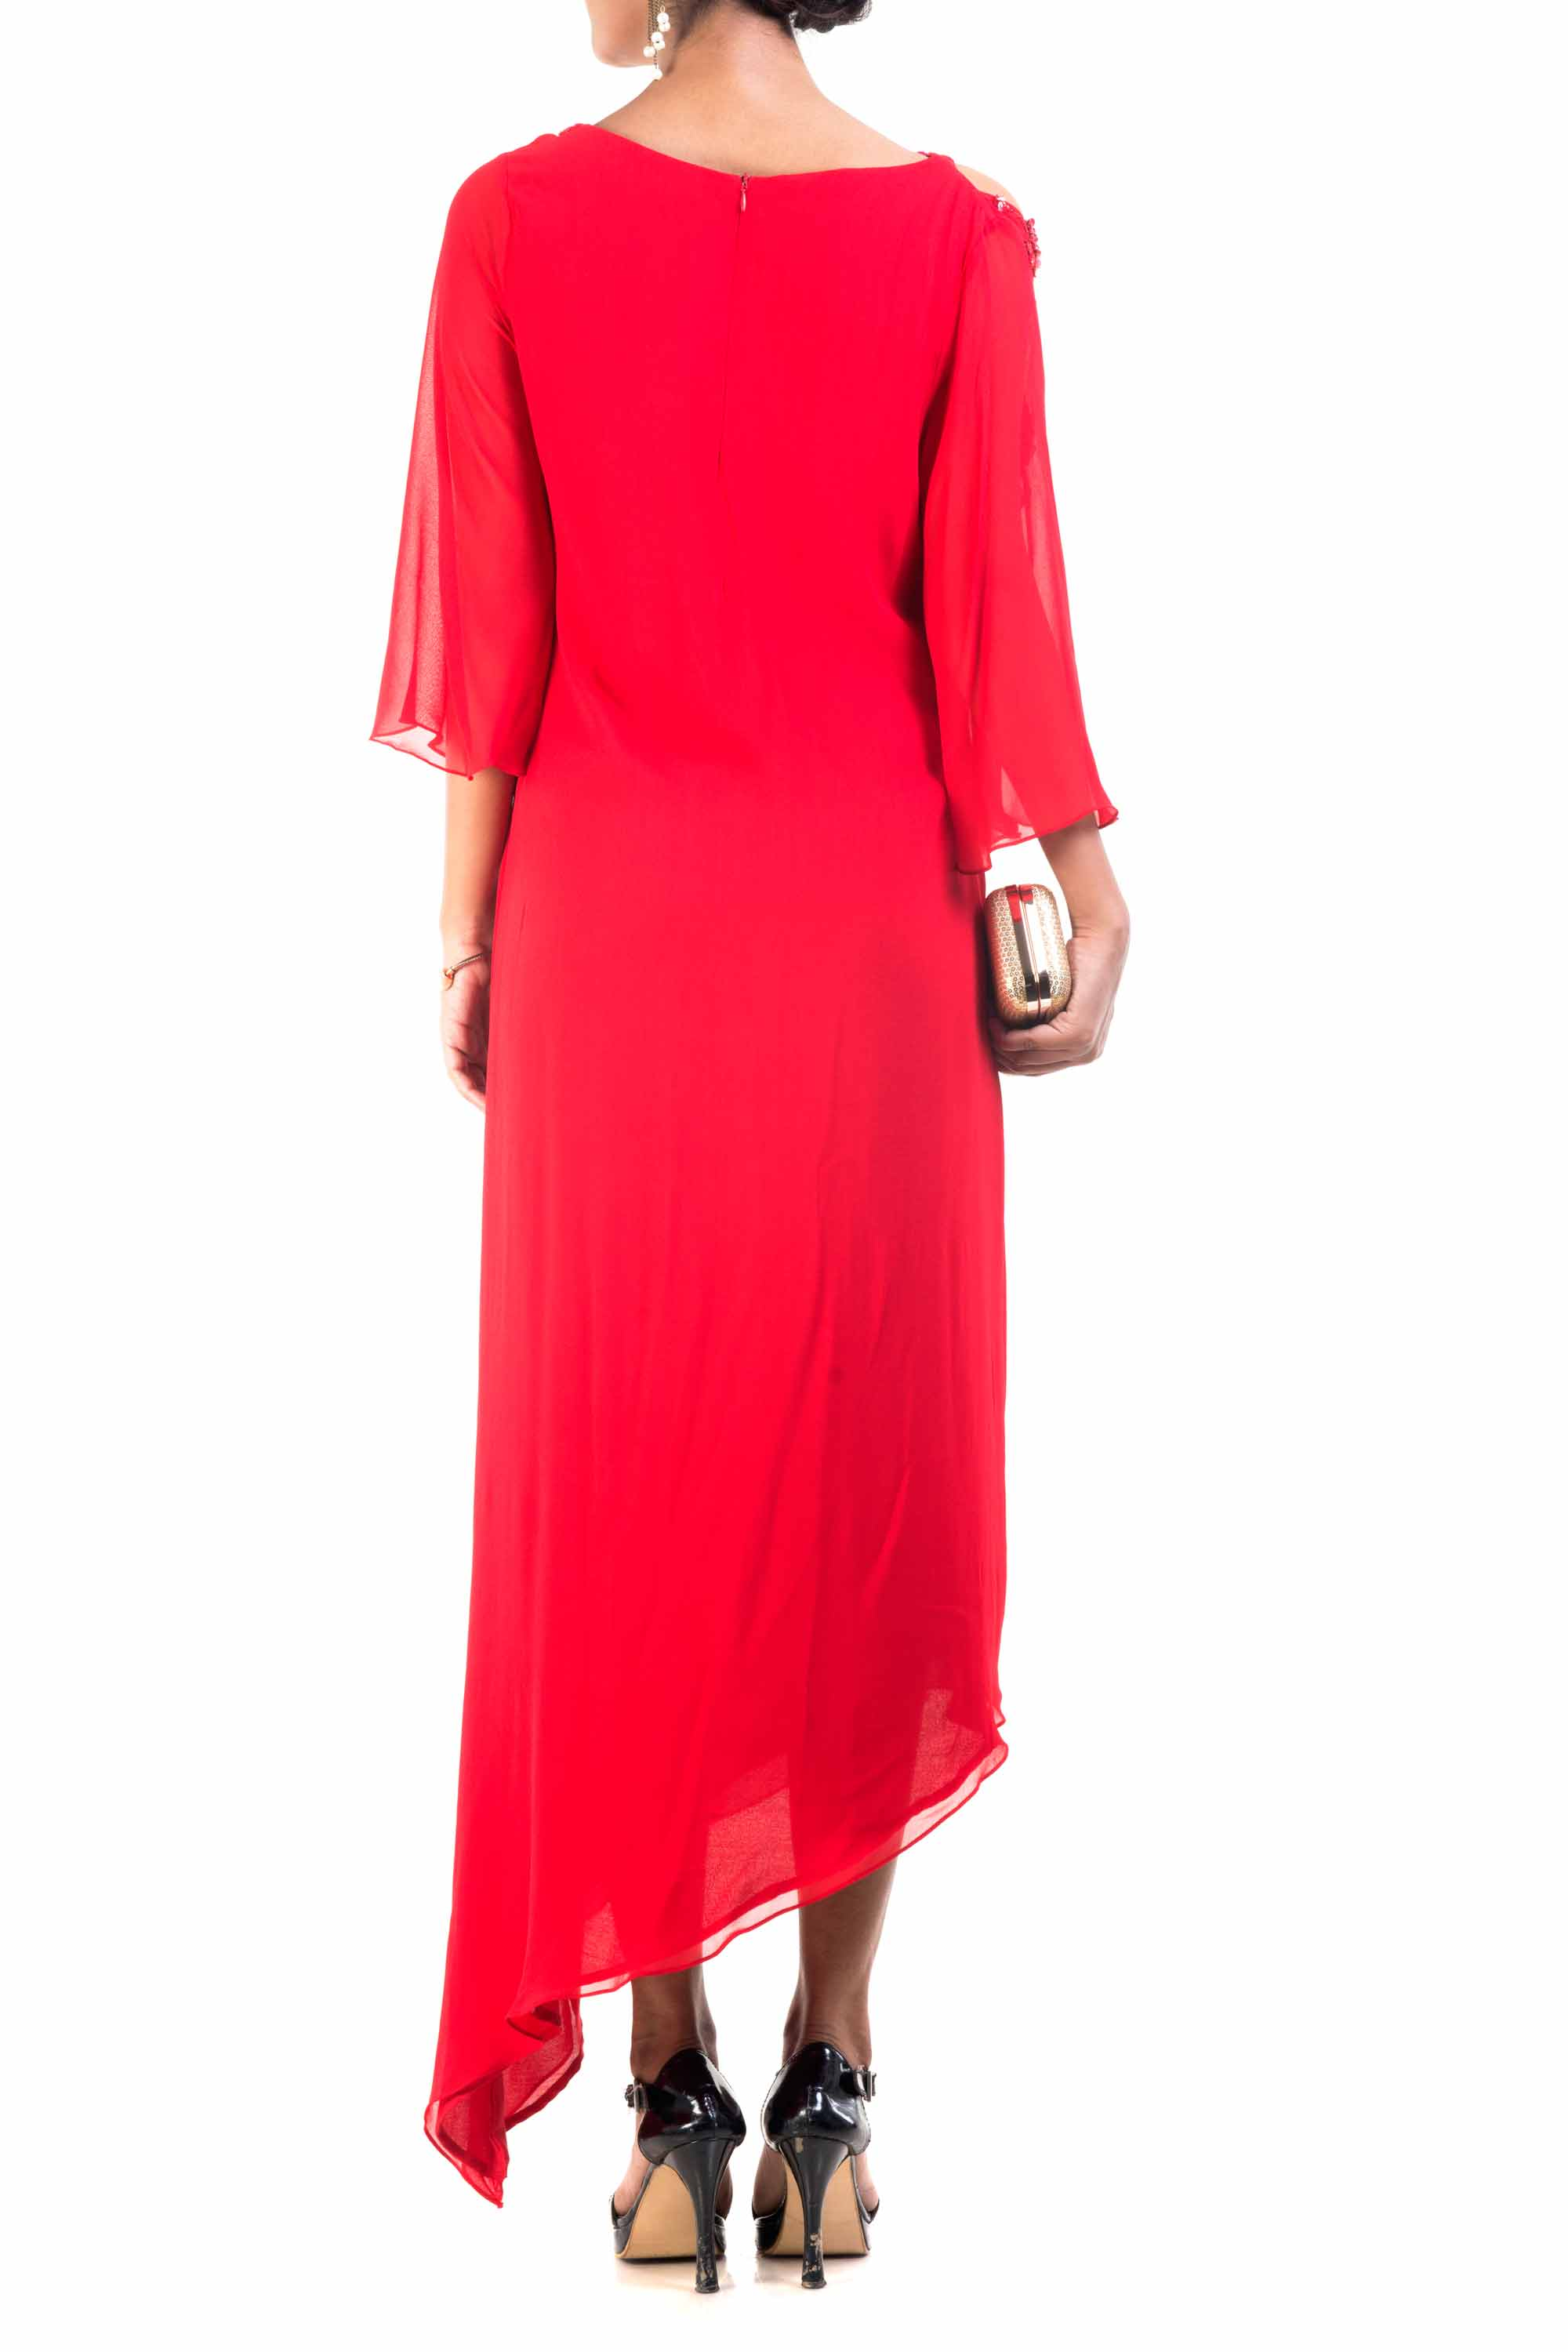 Red Cold Shoulder Asymmetrical Dress Back